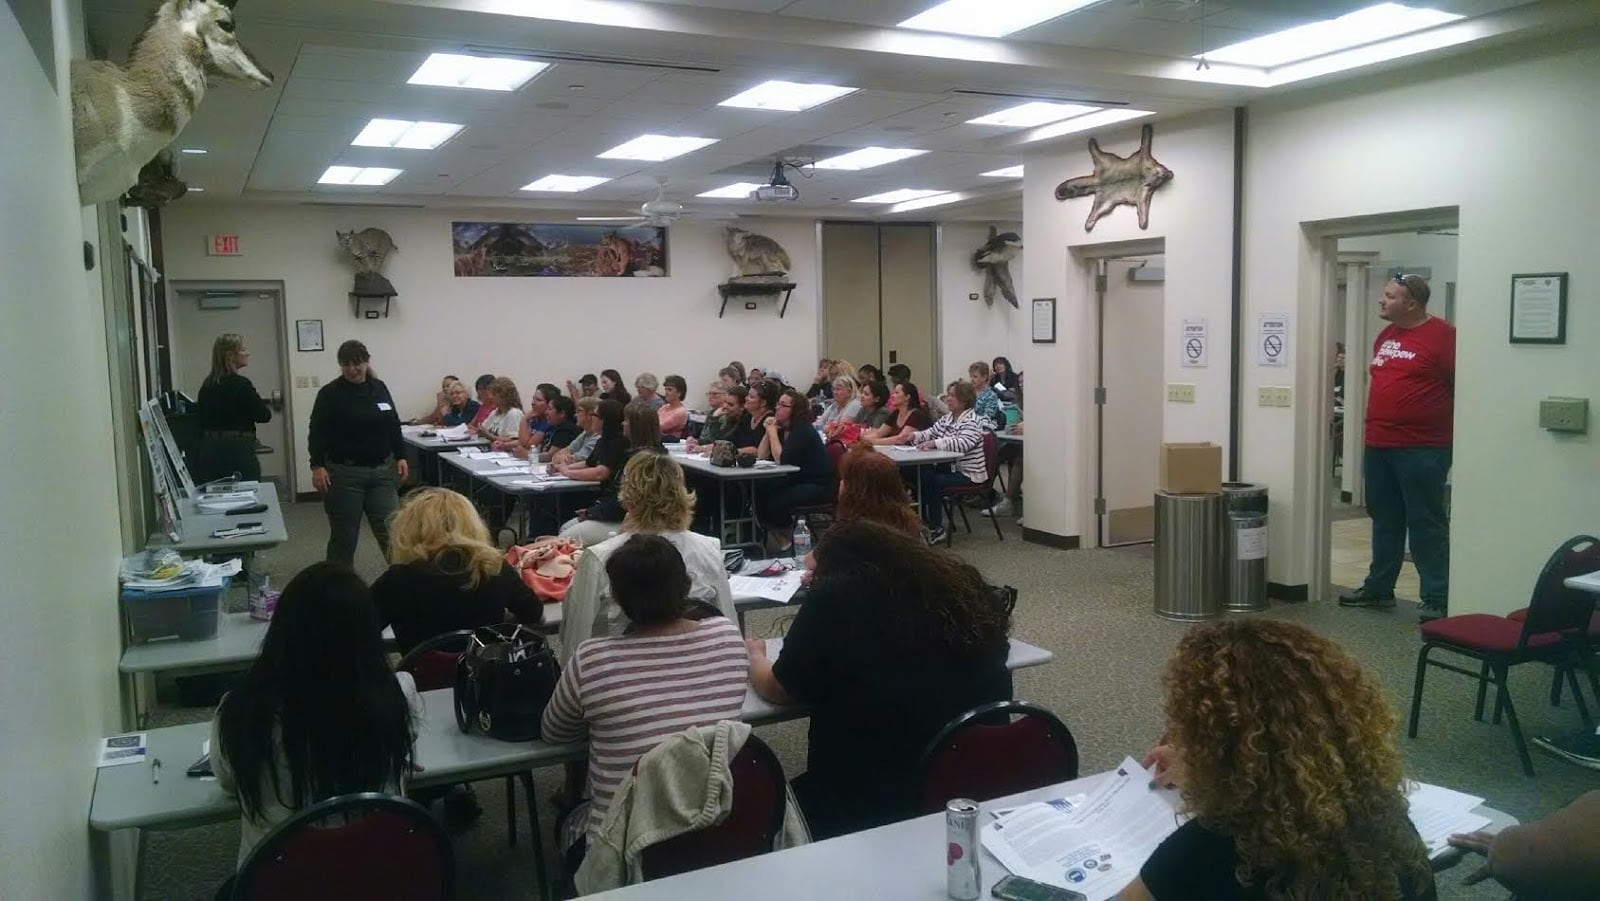 Women attending the Nevada Firearms Coalition's annual training course on April 25, 2017 at the Clark County Shooting Complex in Las Vegas. (Photo: NevadaCarry.org)